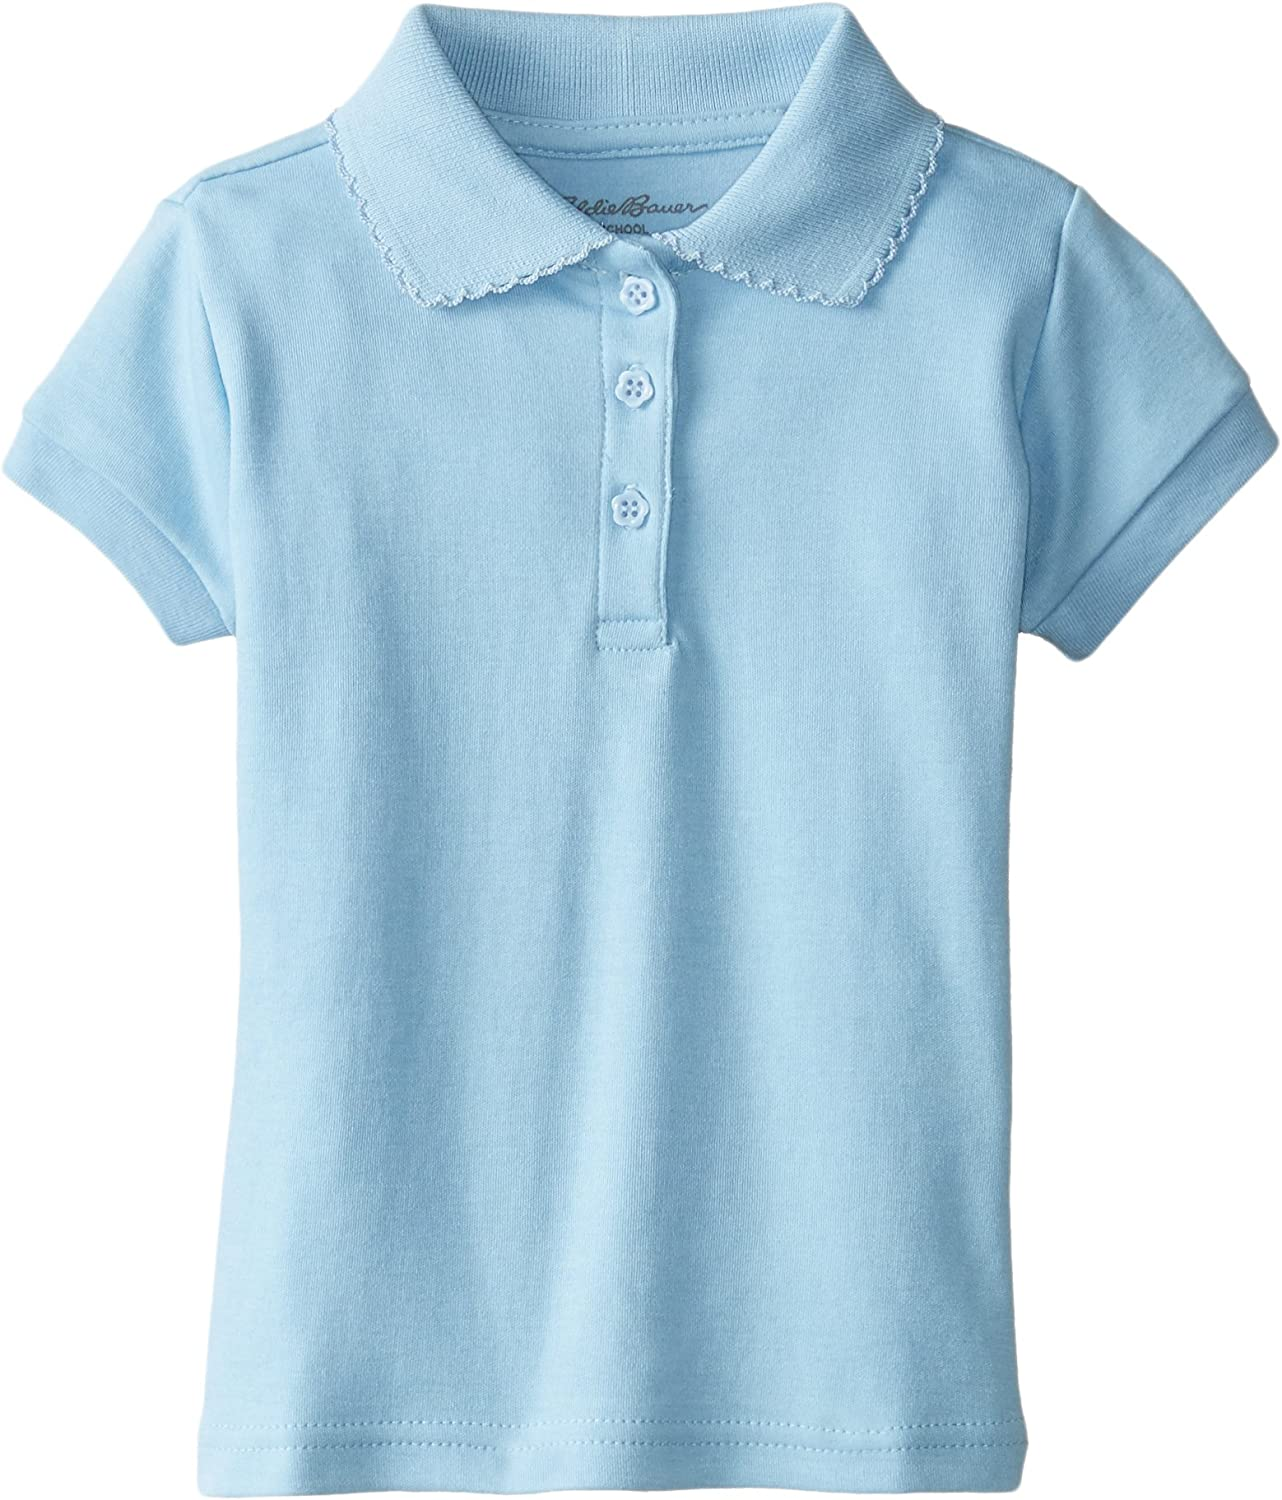 More Styles Available Eddie Bauer Girls Polo Shirt